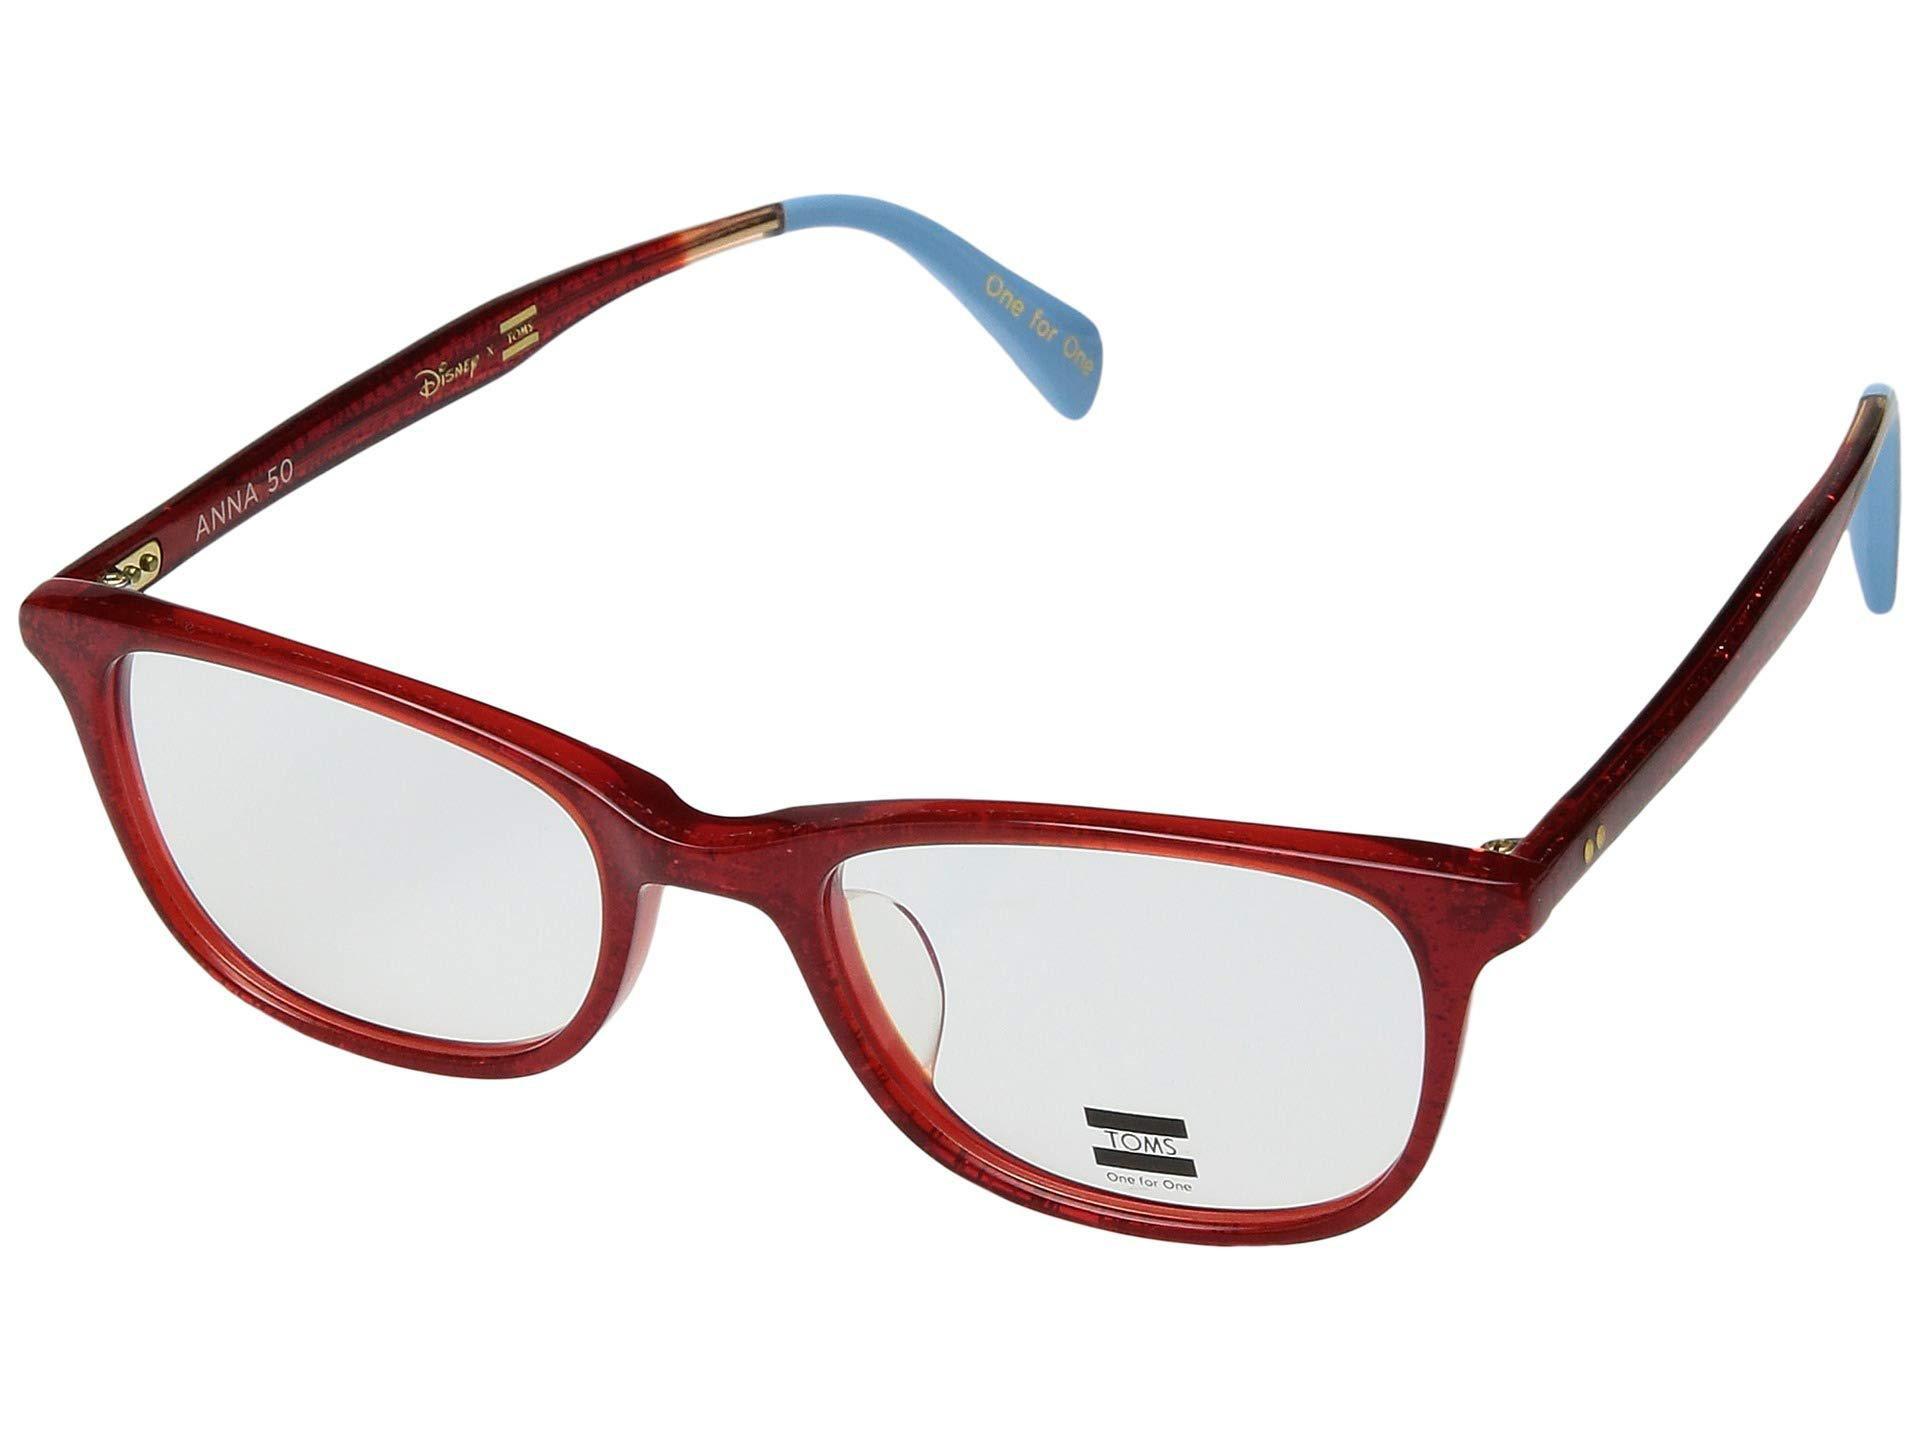 7491e9487d Lyst - TOMS Disney(r) Anna 50 (red Glitter) Fashion Sunglasses in Red